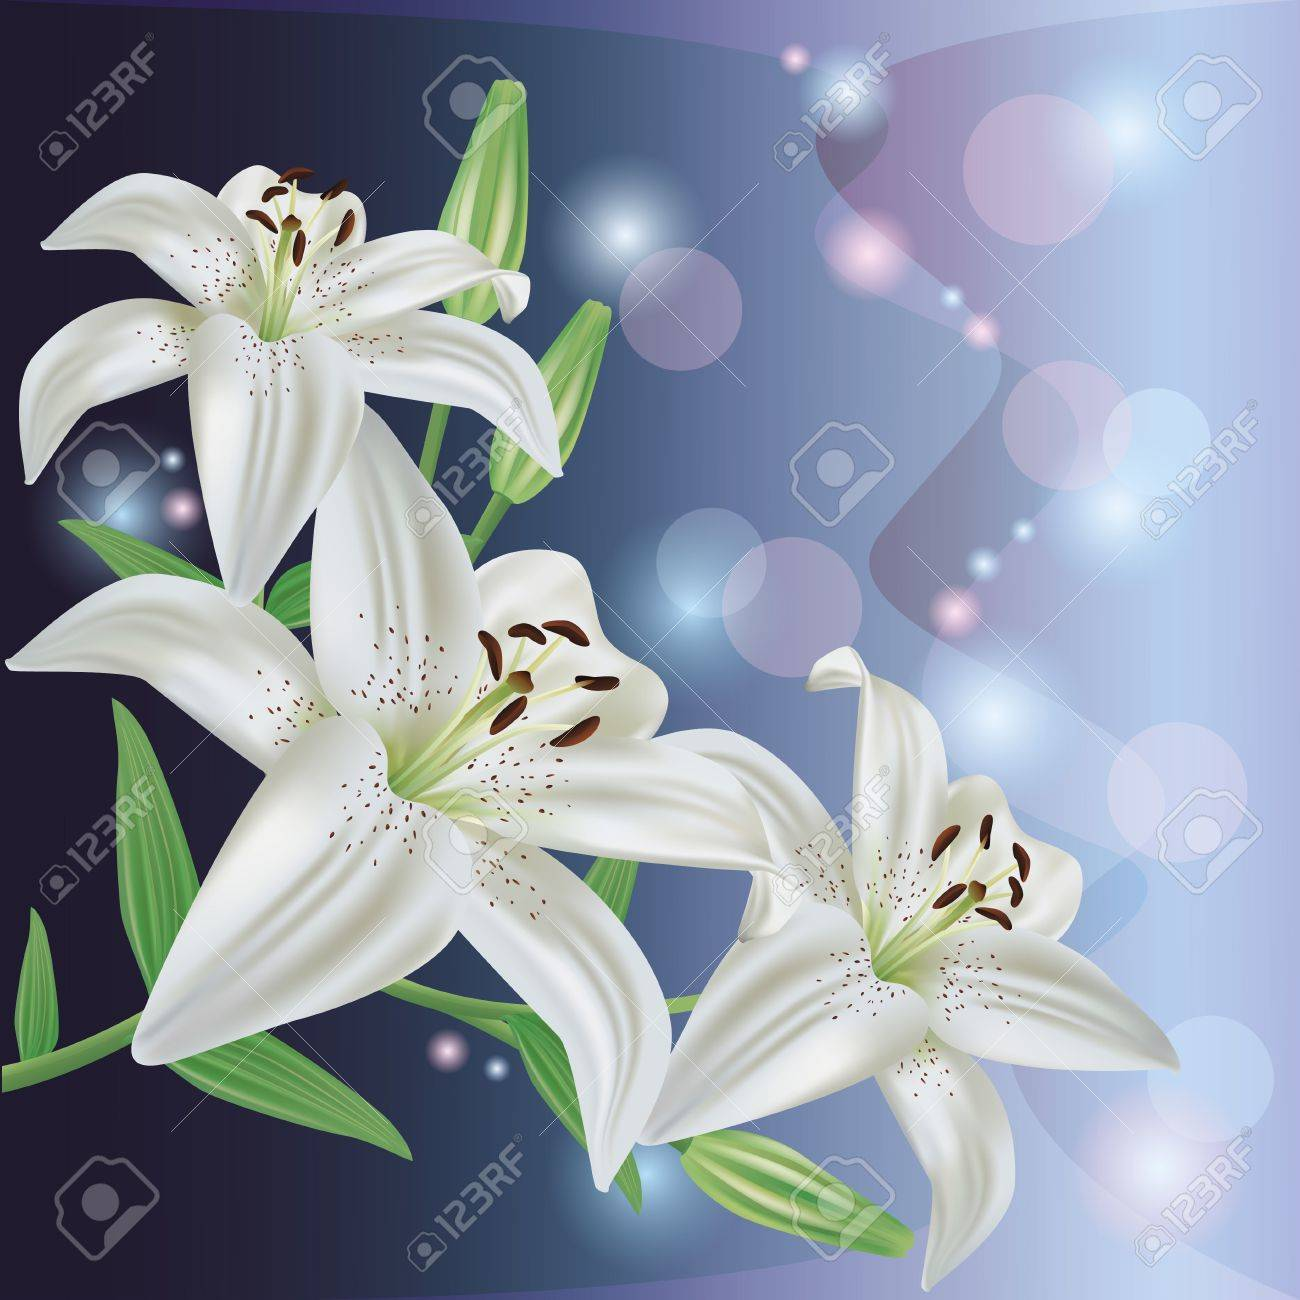 Greeting or invitation card with white lily flower.Glowing floral background, vector Stock Vector - 13131553